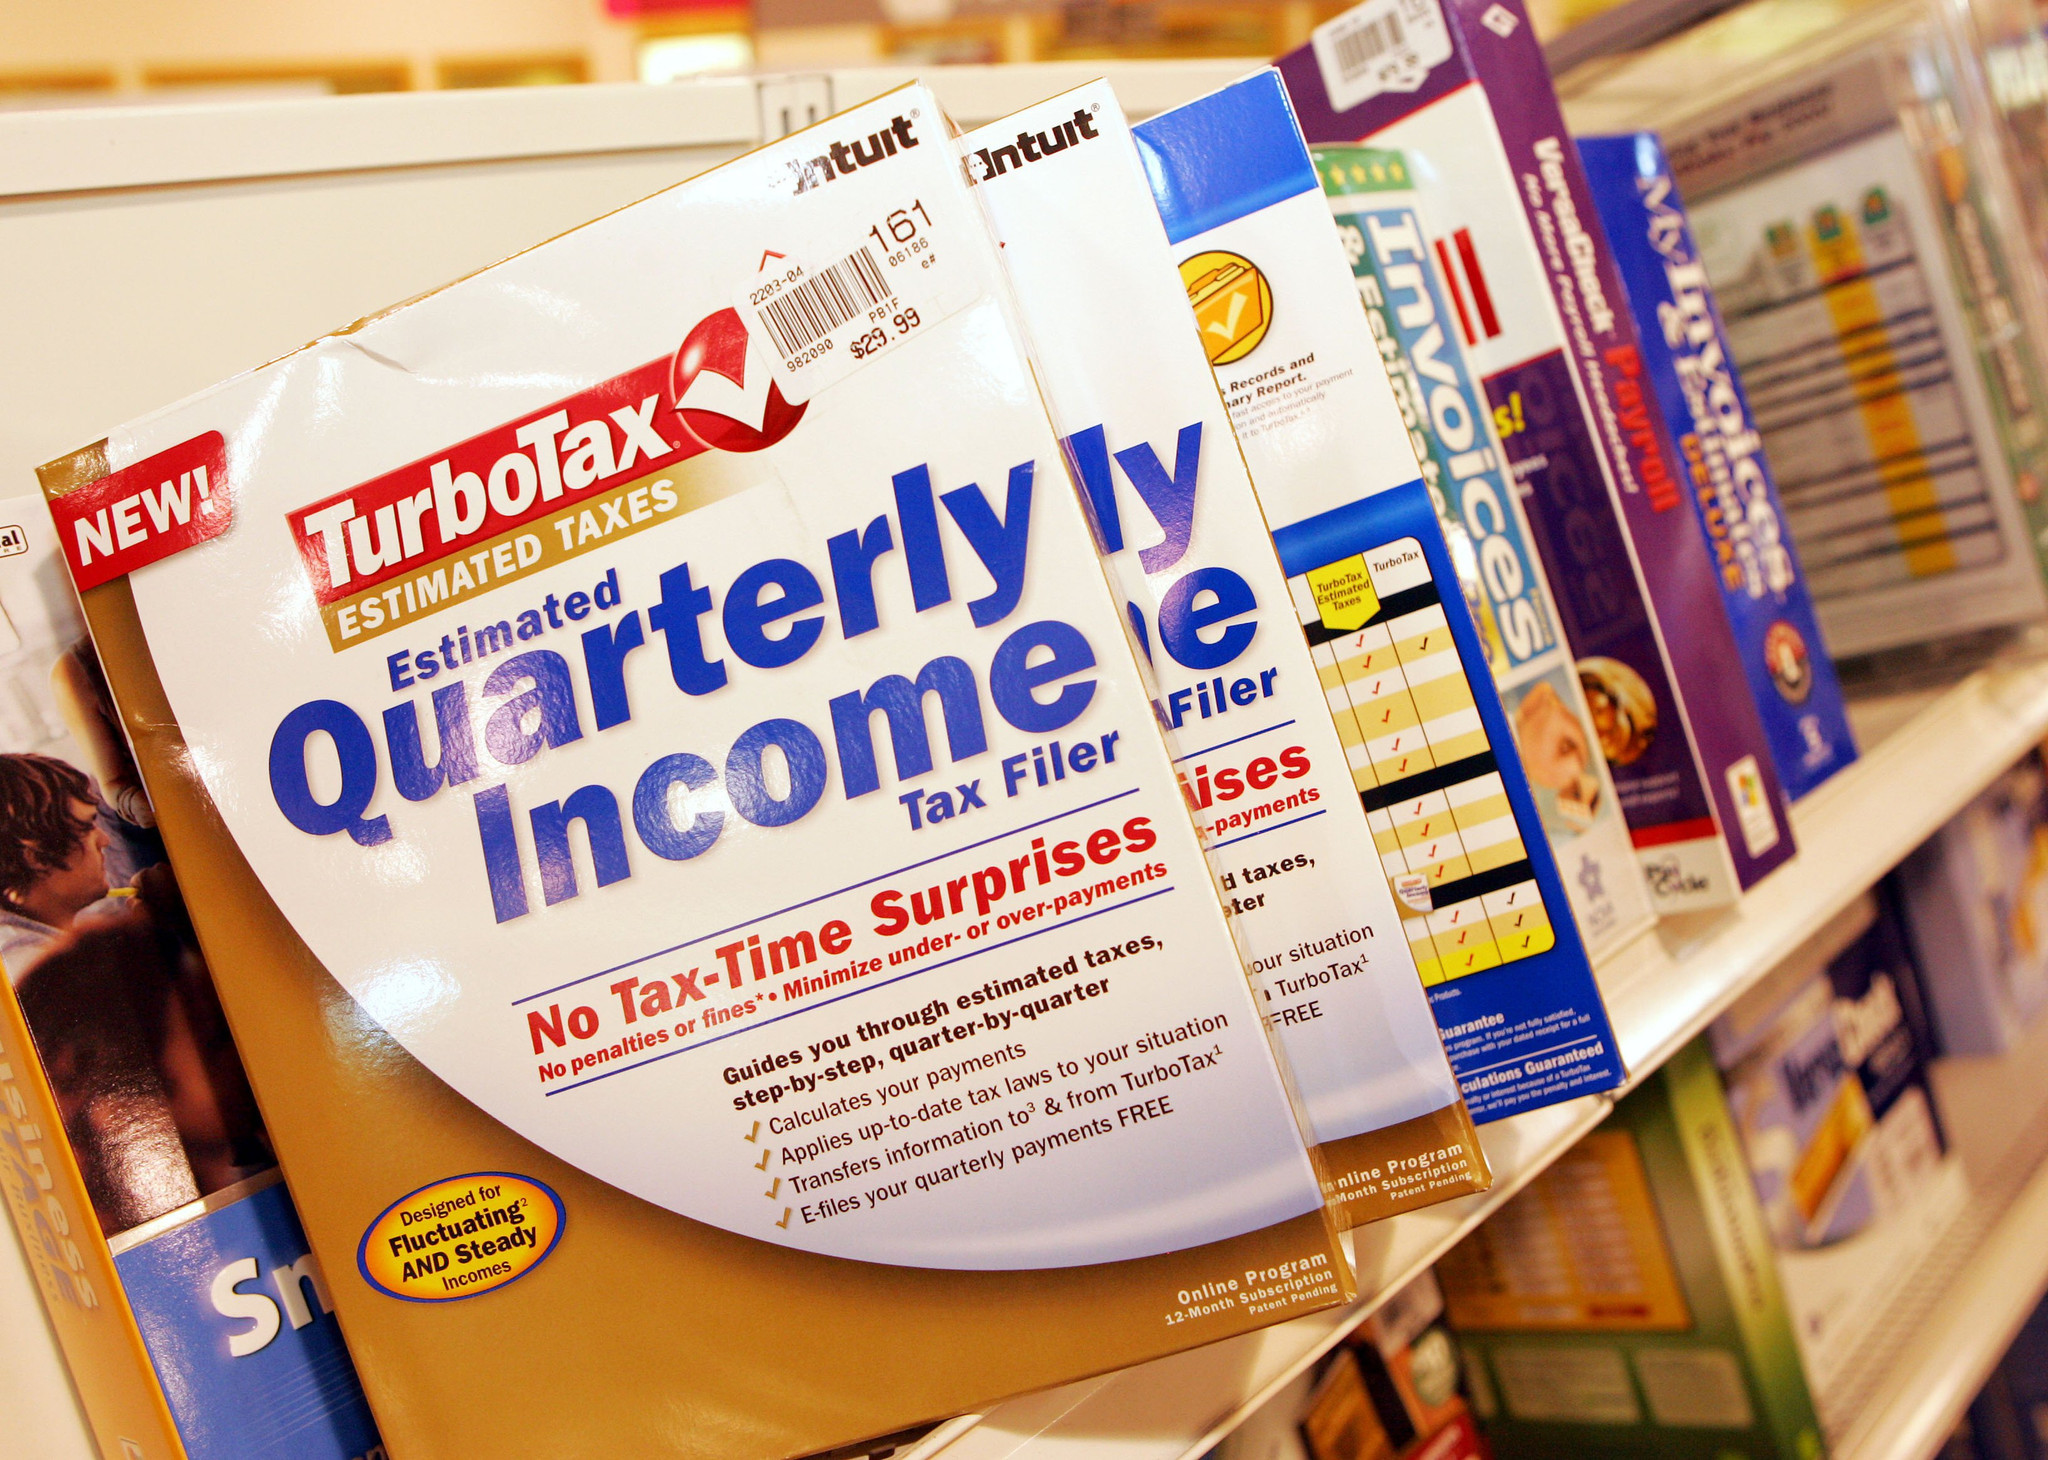 TurboTax maker offers $25 rebate, says 'We messed up'